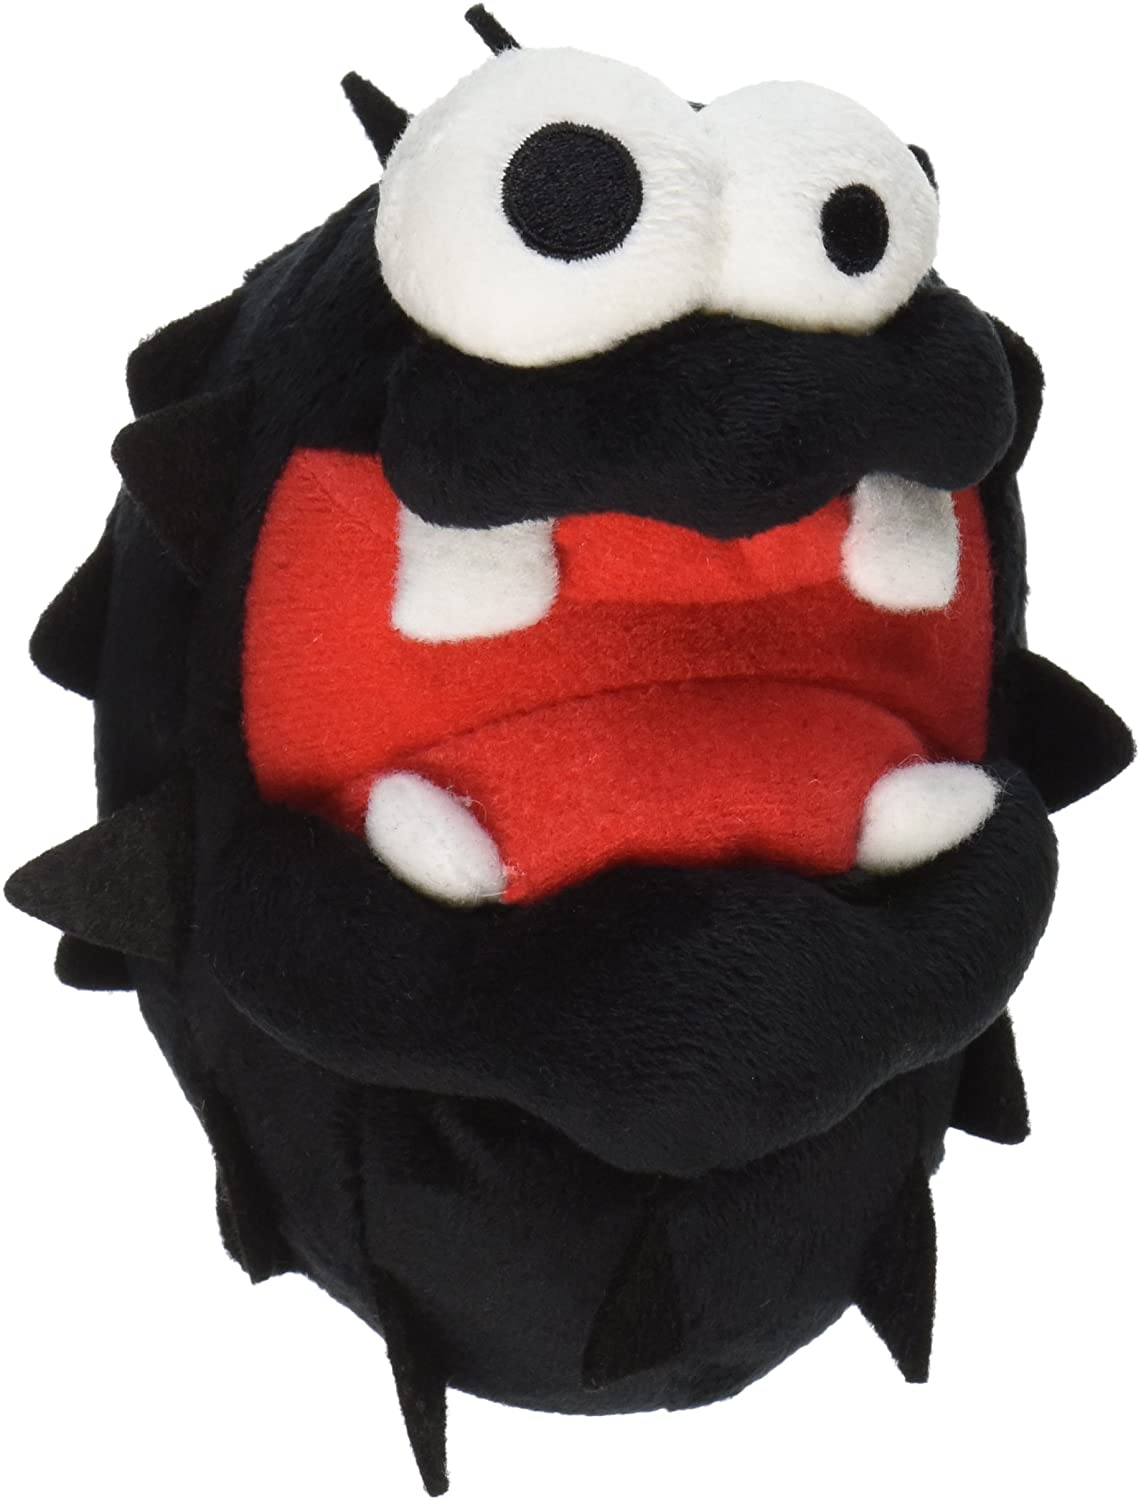 UK SELLER Small New Super Mario Plush Spiny Koopa Soft Toy 4/""